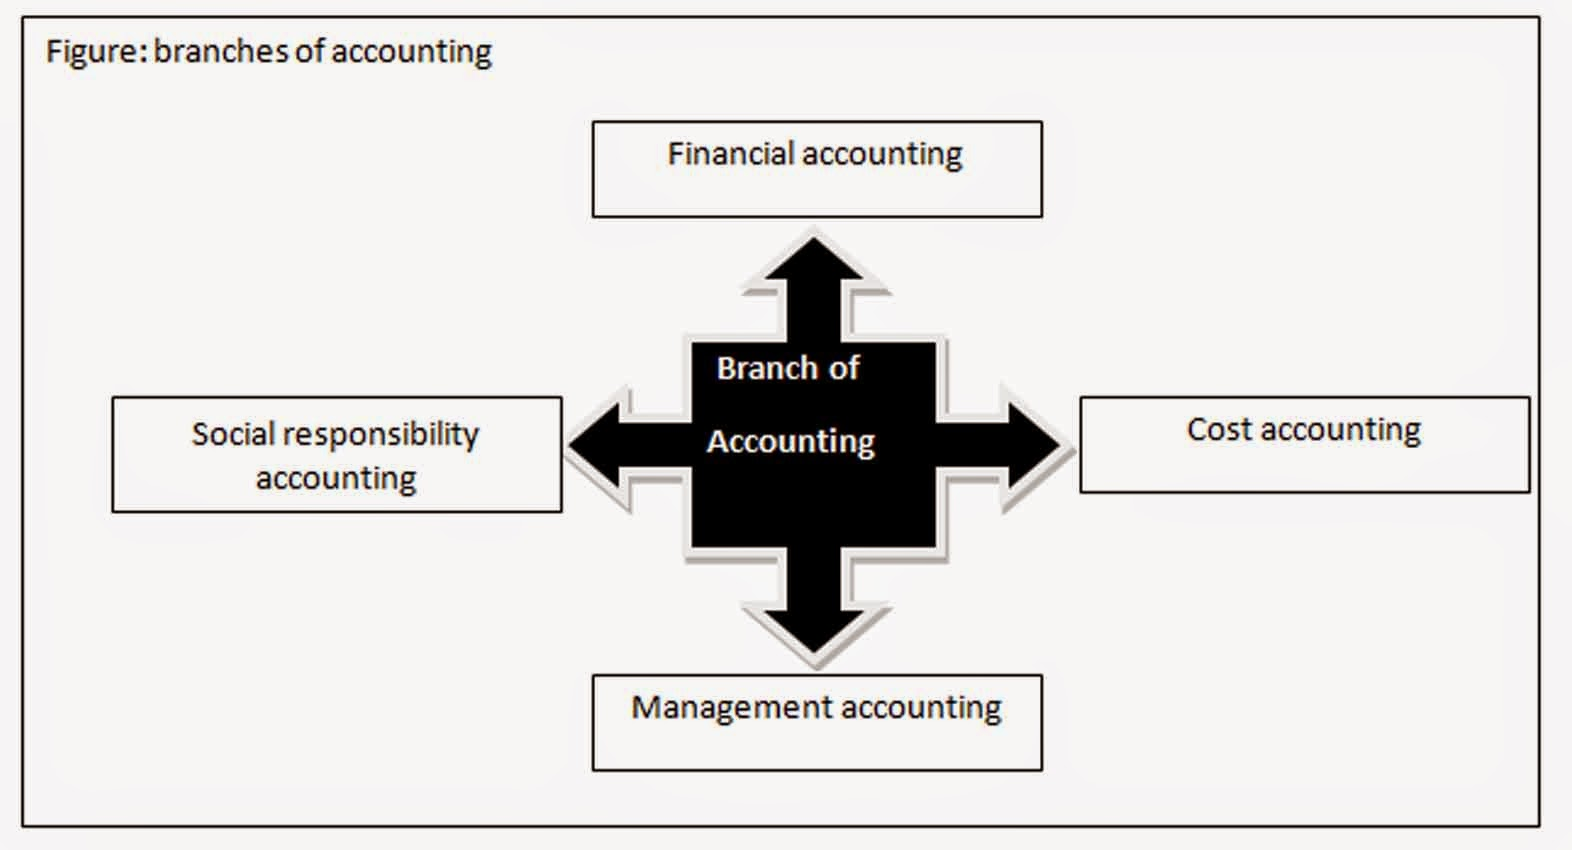 What is accountingaccounting in information system online branch of account branch of accounting accounting systems branch branch pooptronica